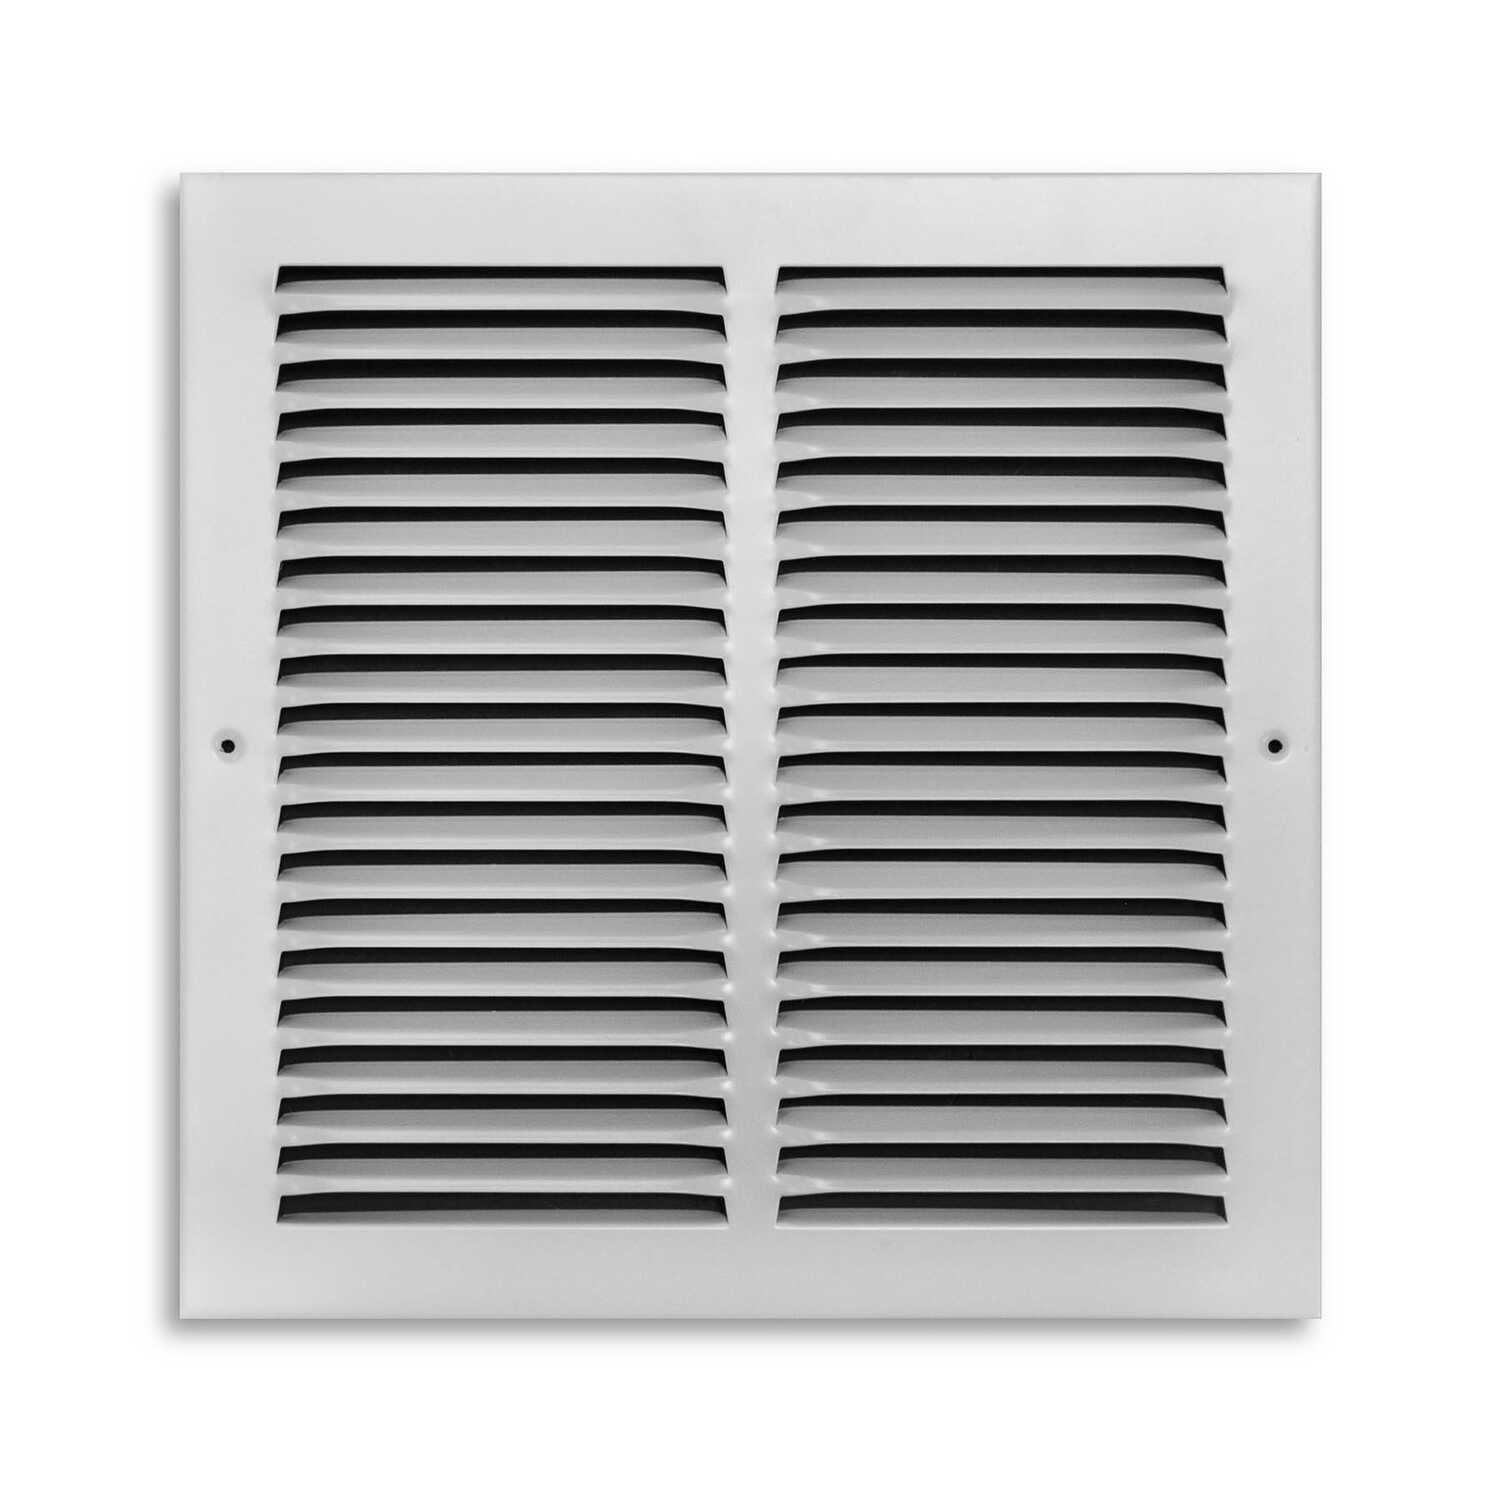 Tru Aire  12 in. H x 1/4 in. D 1-Way  White  Return Air Grille  Powder Coat  Steel